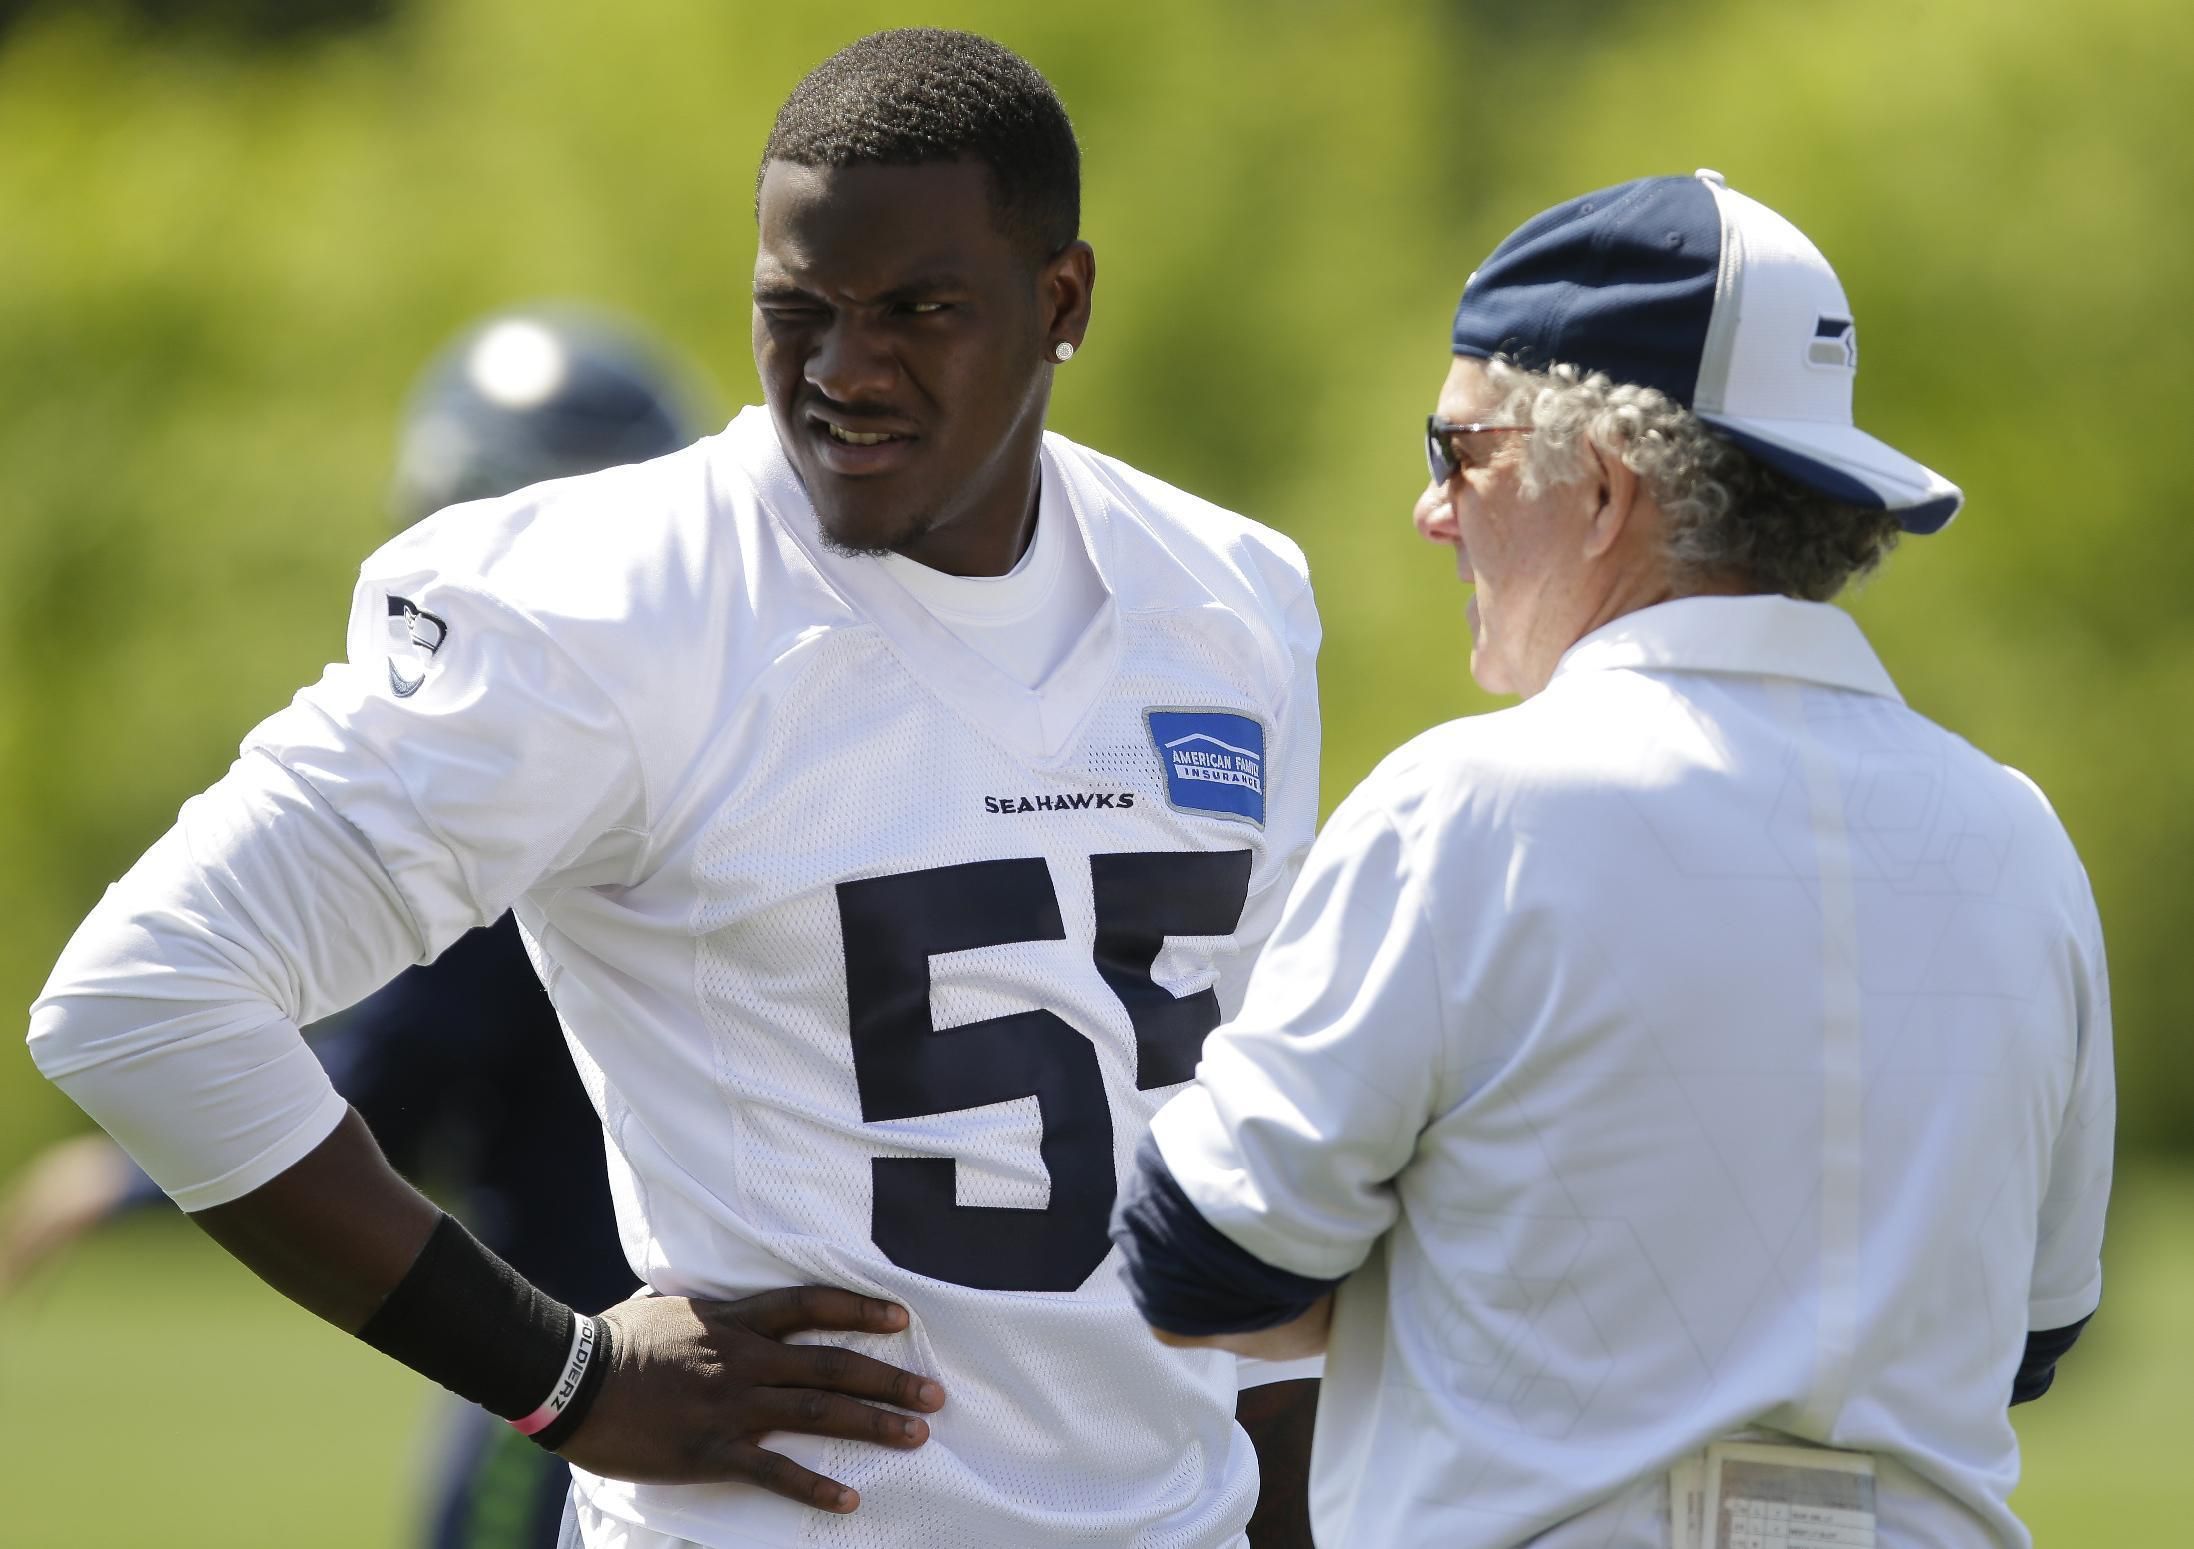 Seahawks Frank Clark in group of 5 high risk rookies showing